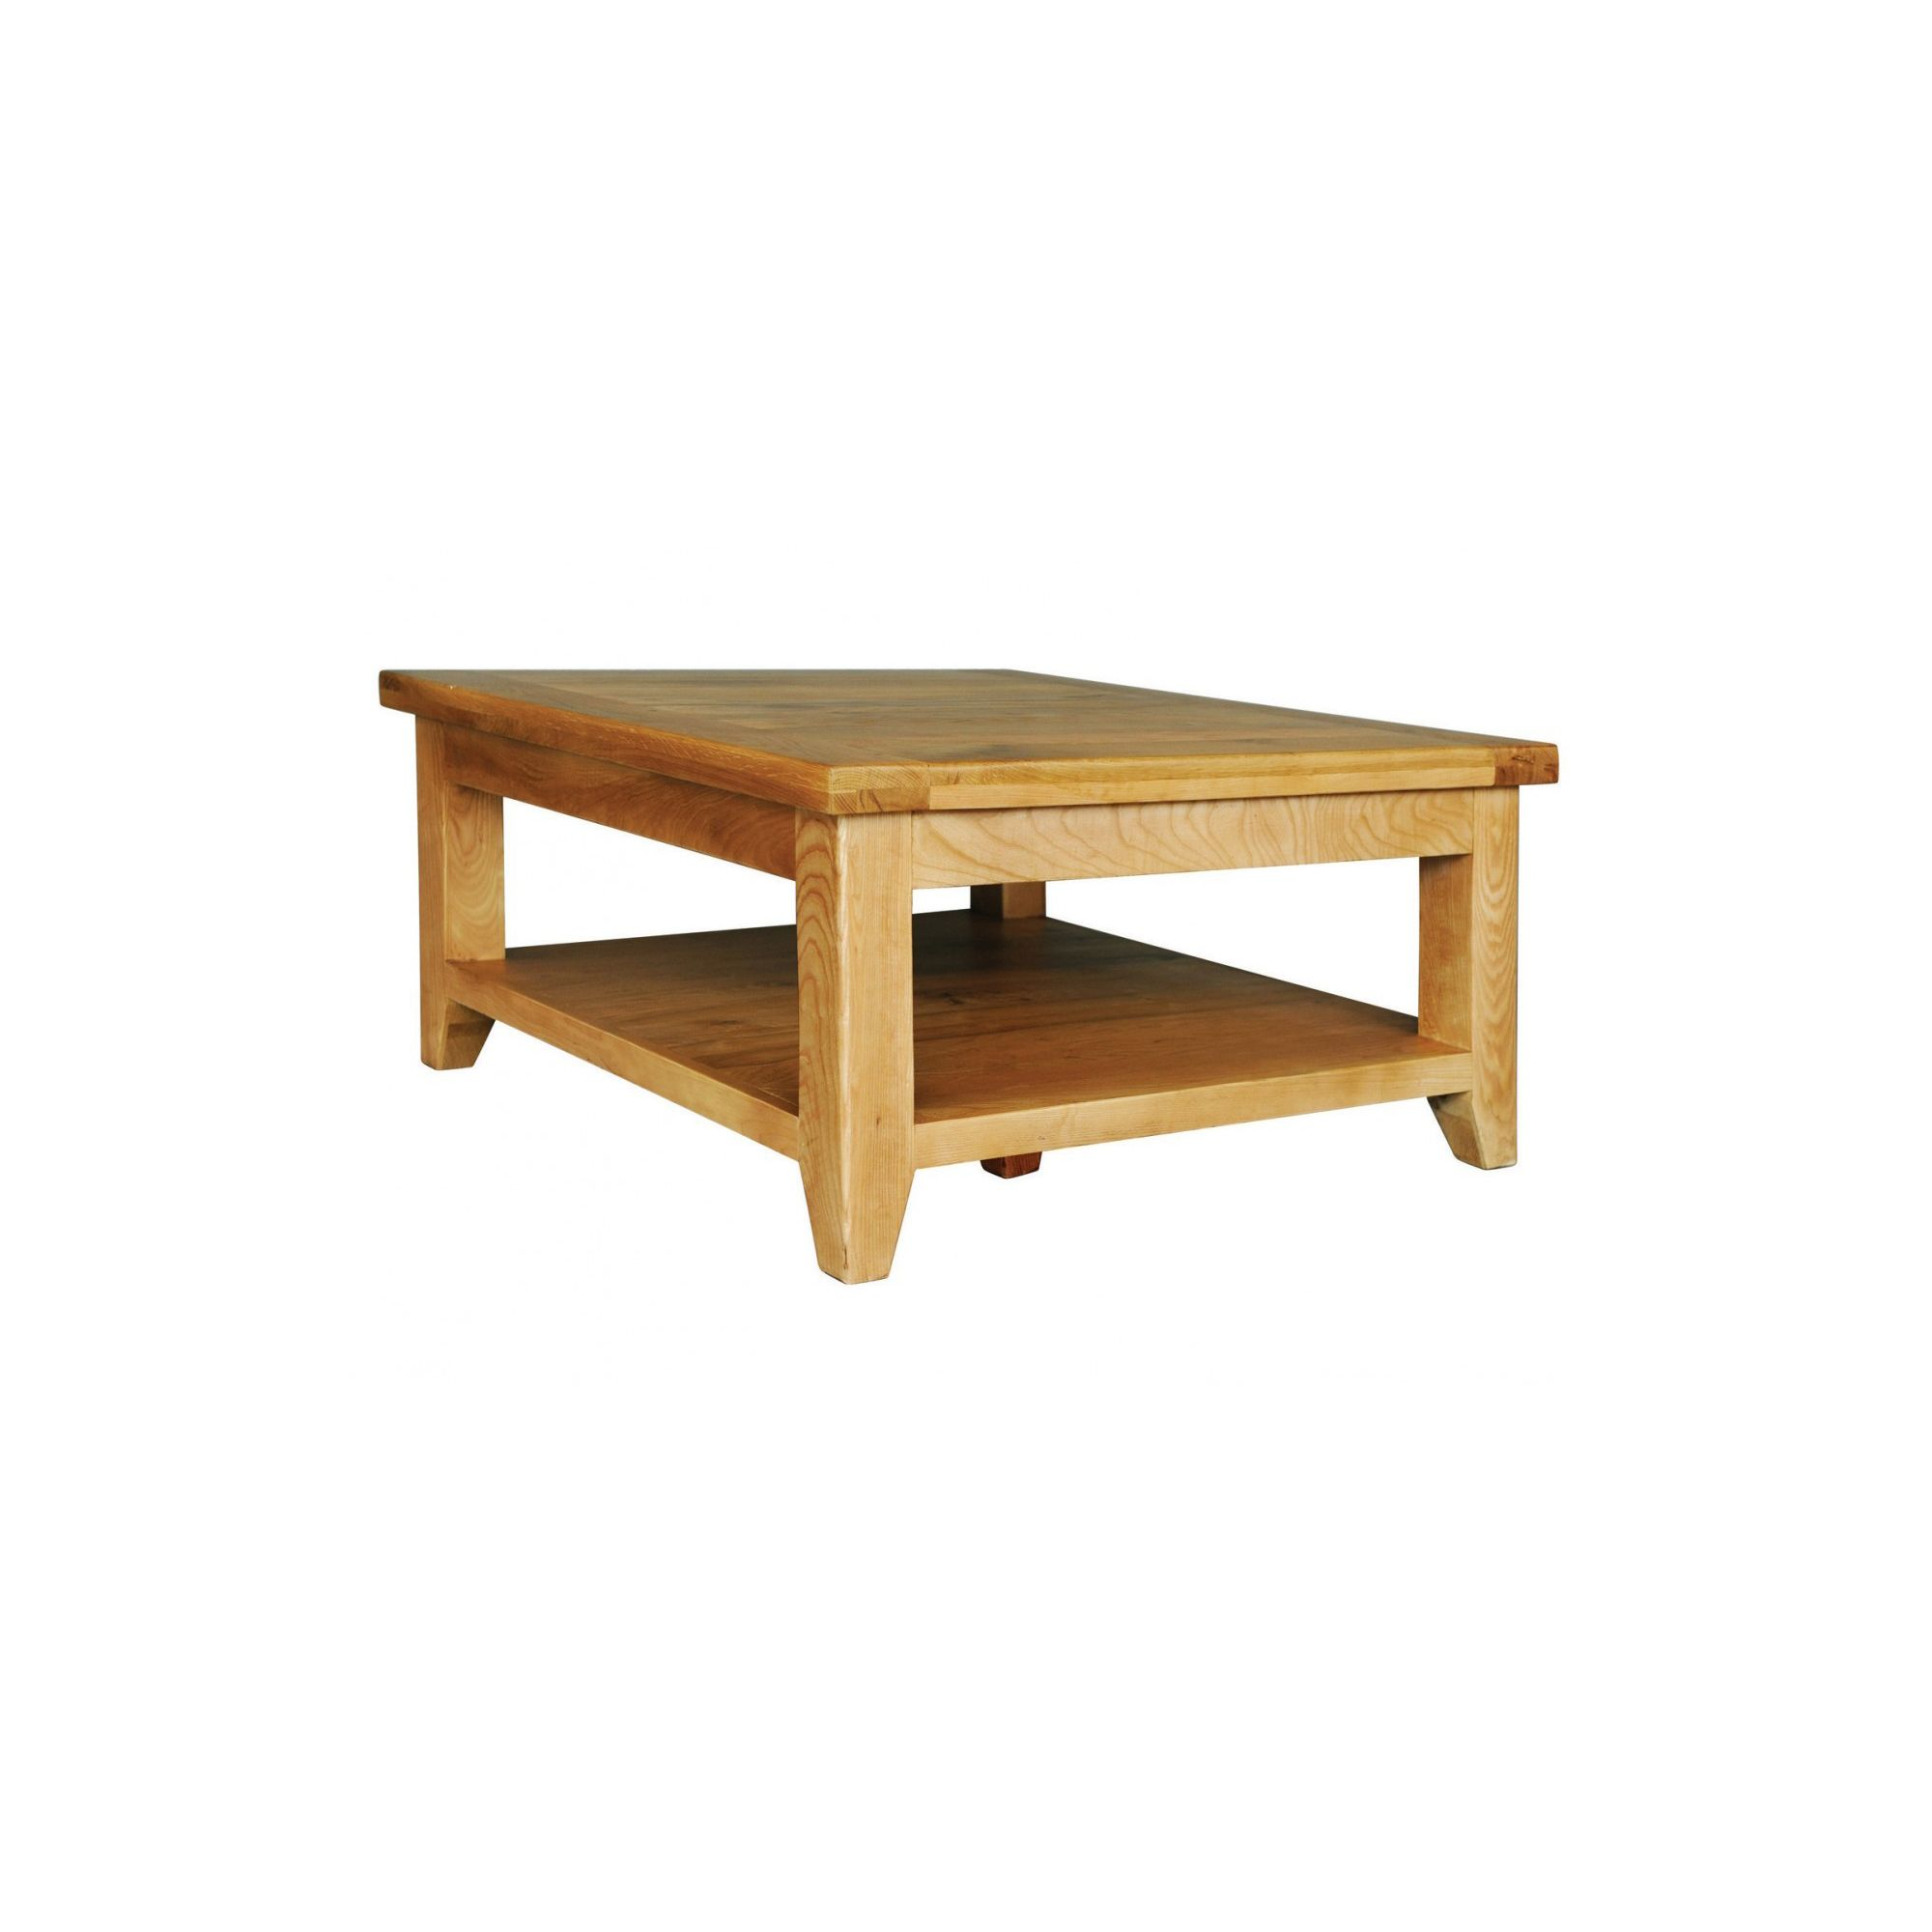 Hawkshead Calgary Square Coffee Table with Shelf at Tesco Direct